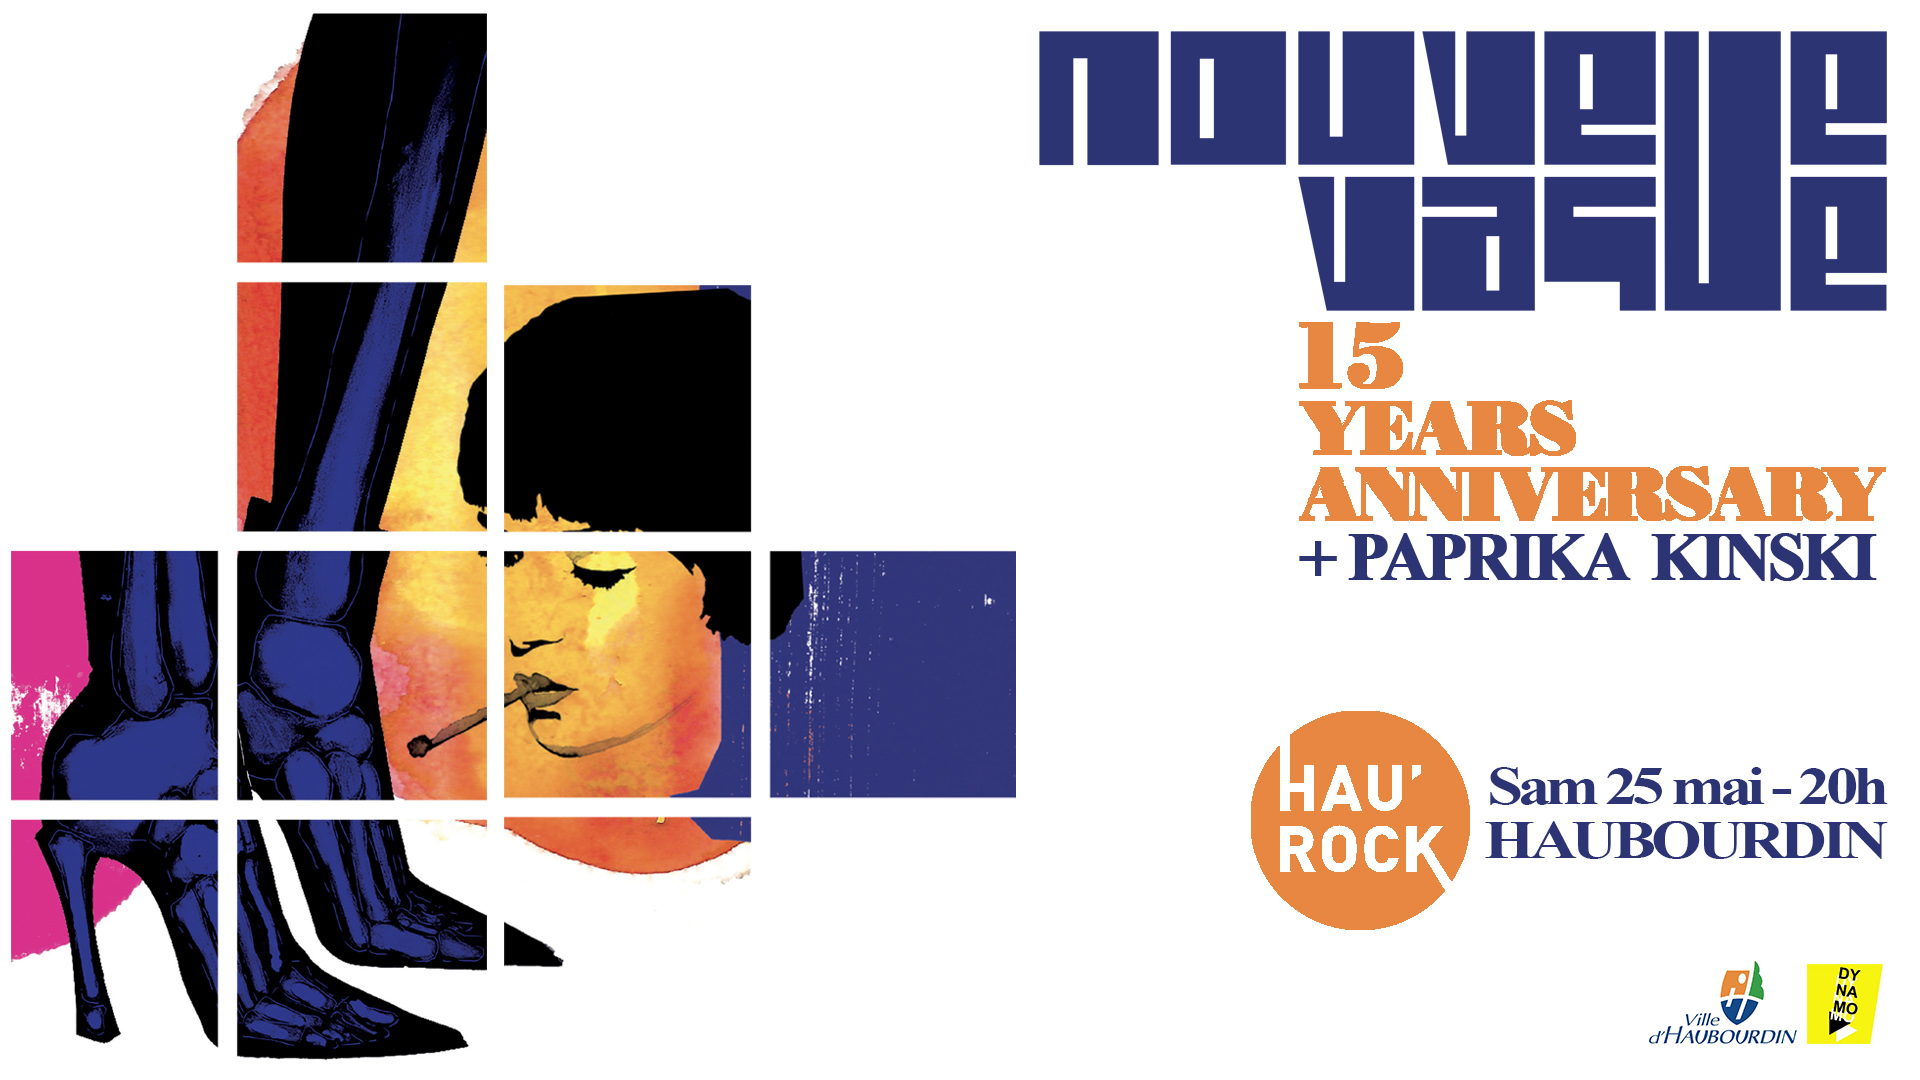 Hau'Rock#5 : Nouvelle Vague + Paprika Kinski